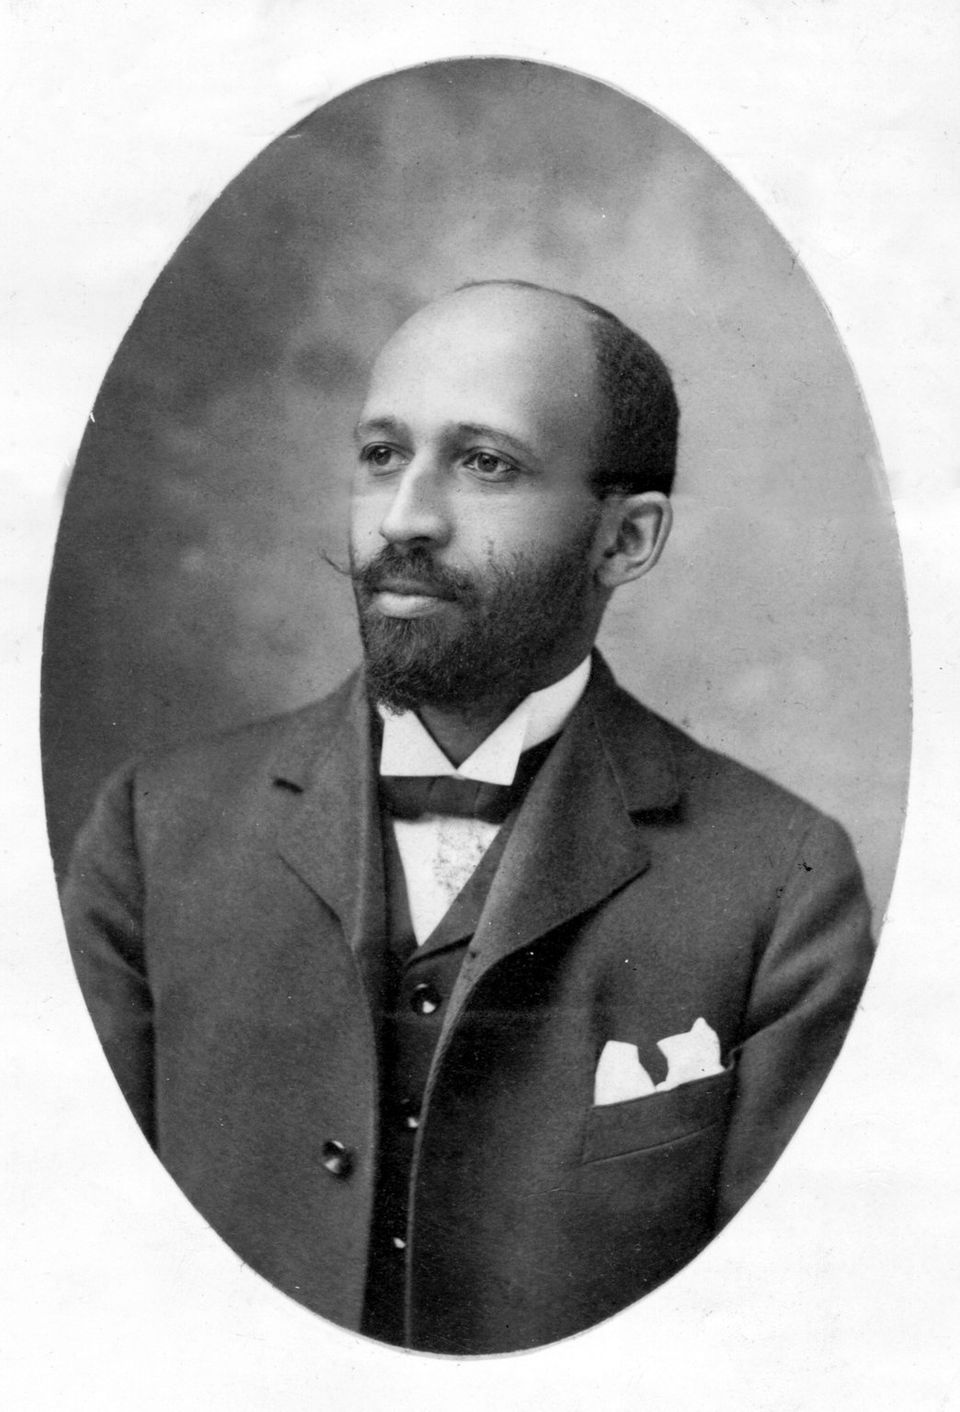 Director of Publicity and Research W E B Du Bois The NAACP was incorporated a year later in 1911  WEB DuBois In Two Volumes 1994